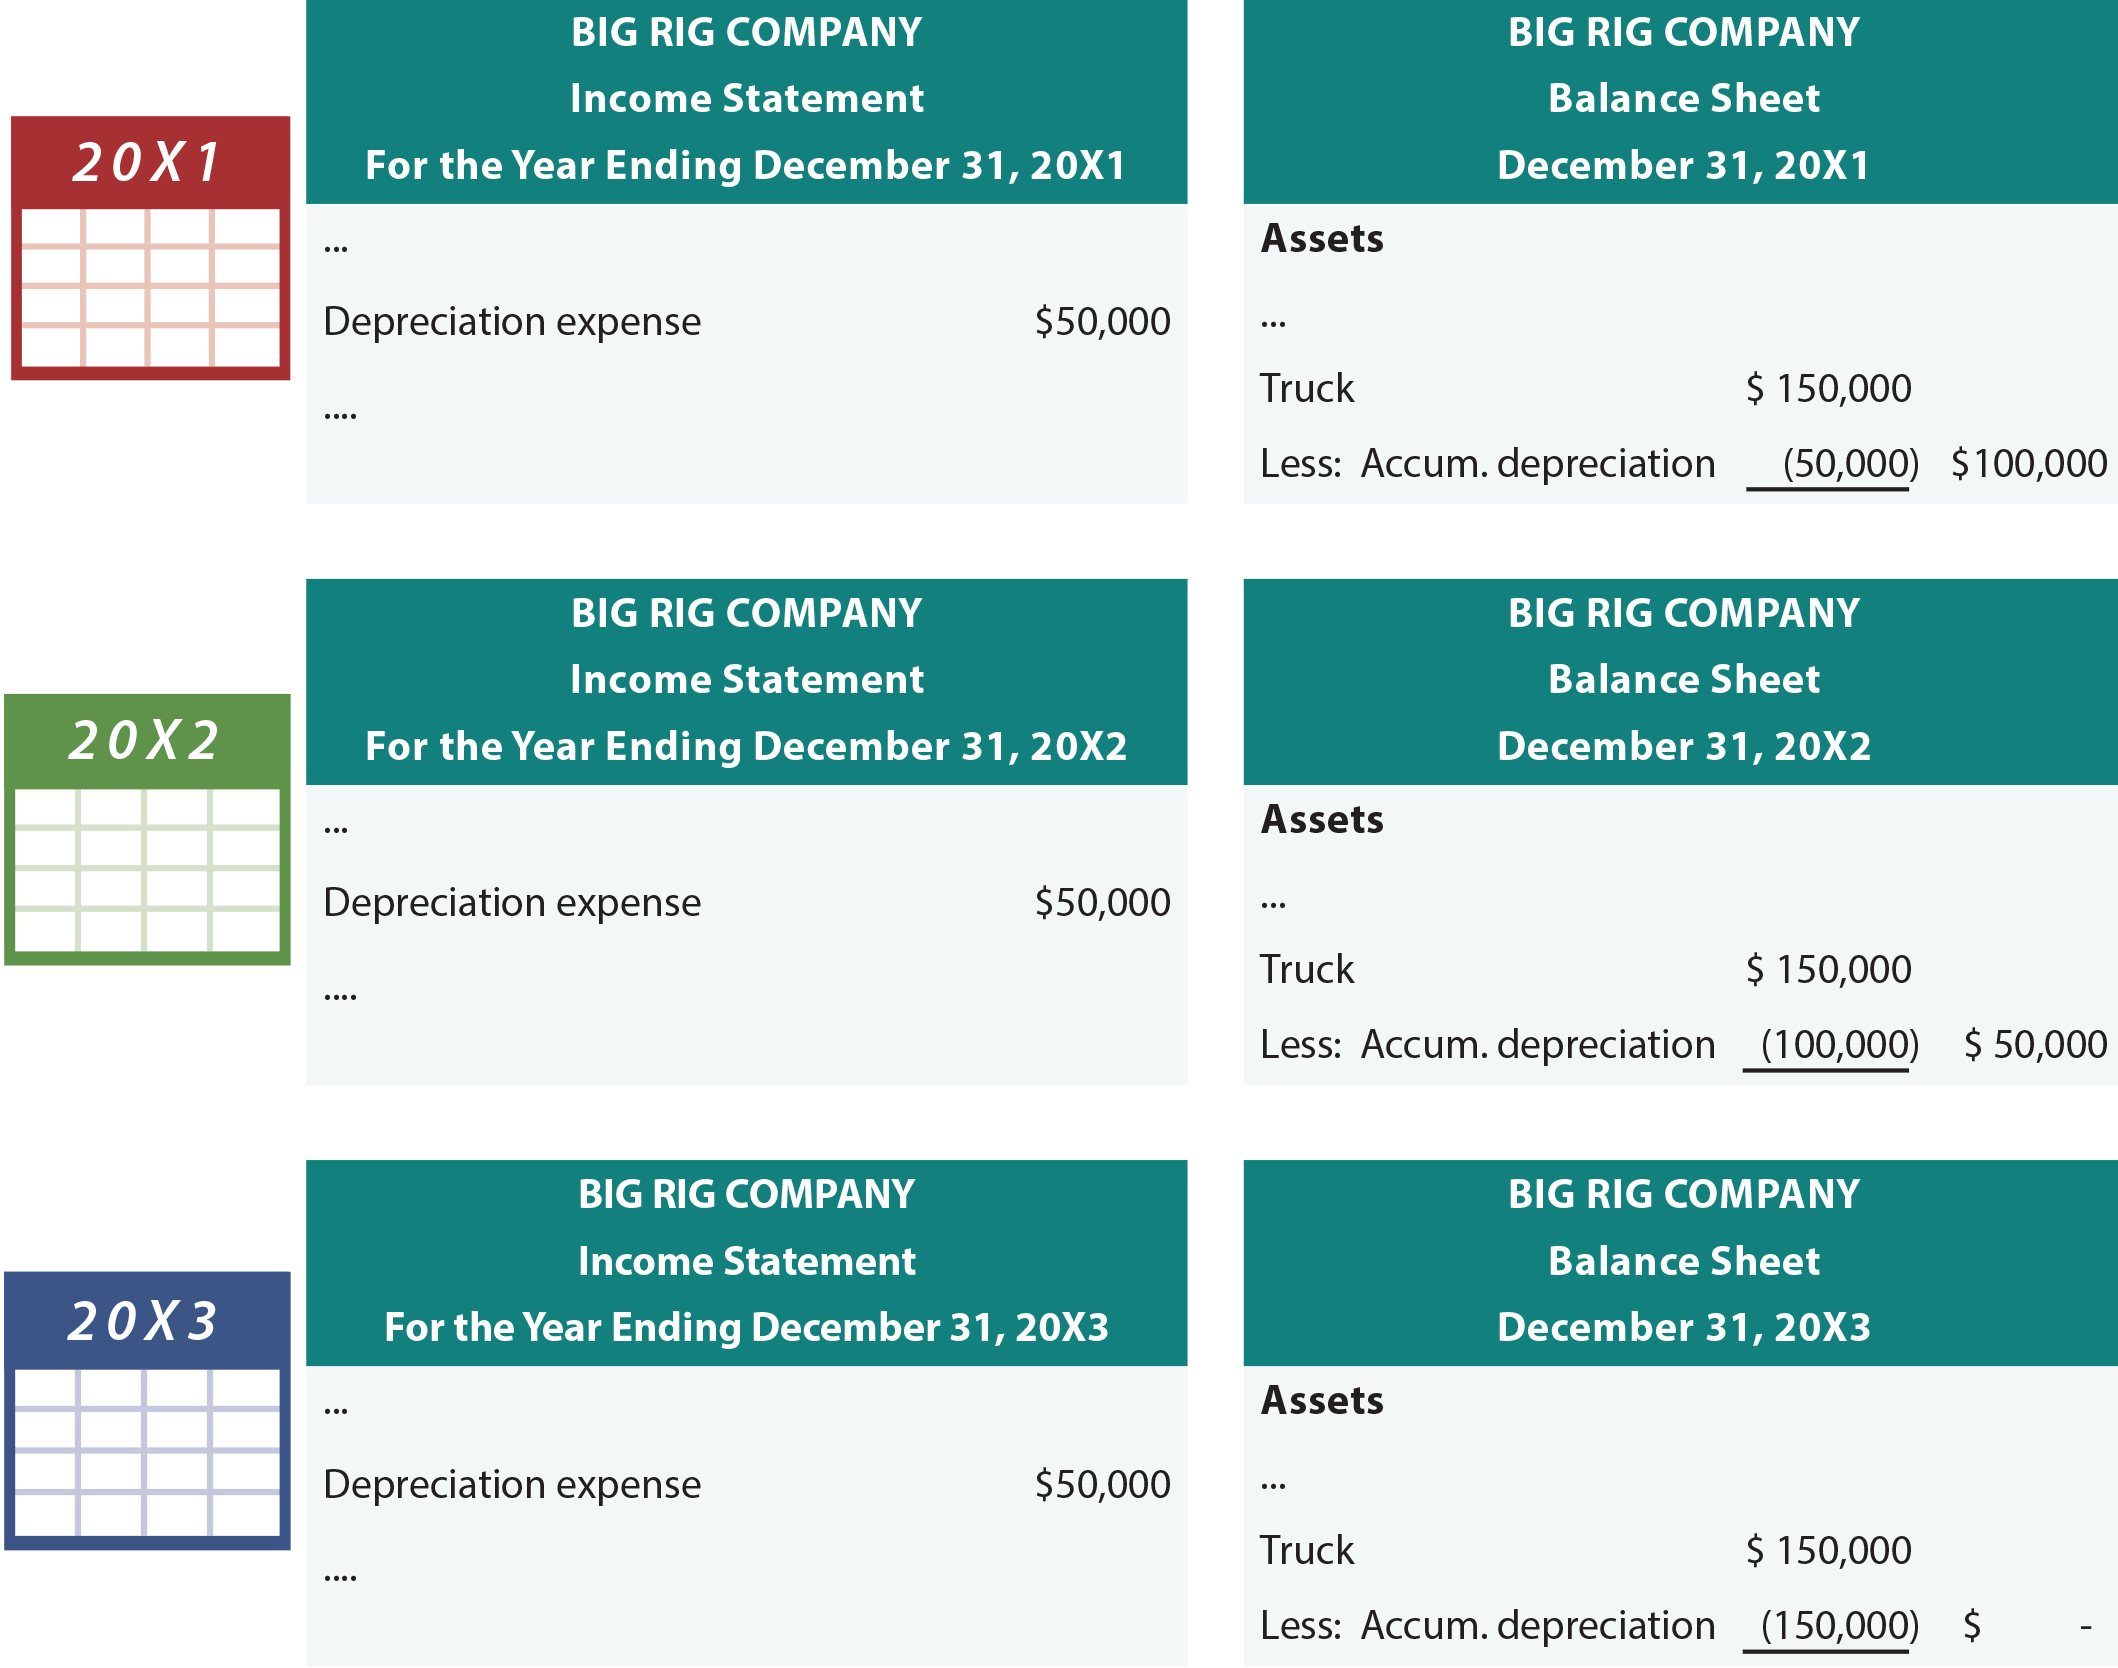 Big Rig Income Statements and Balance Sheets